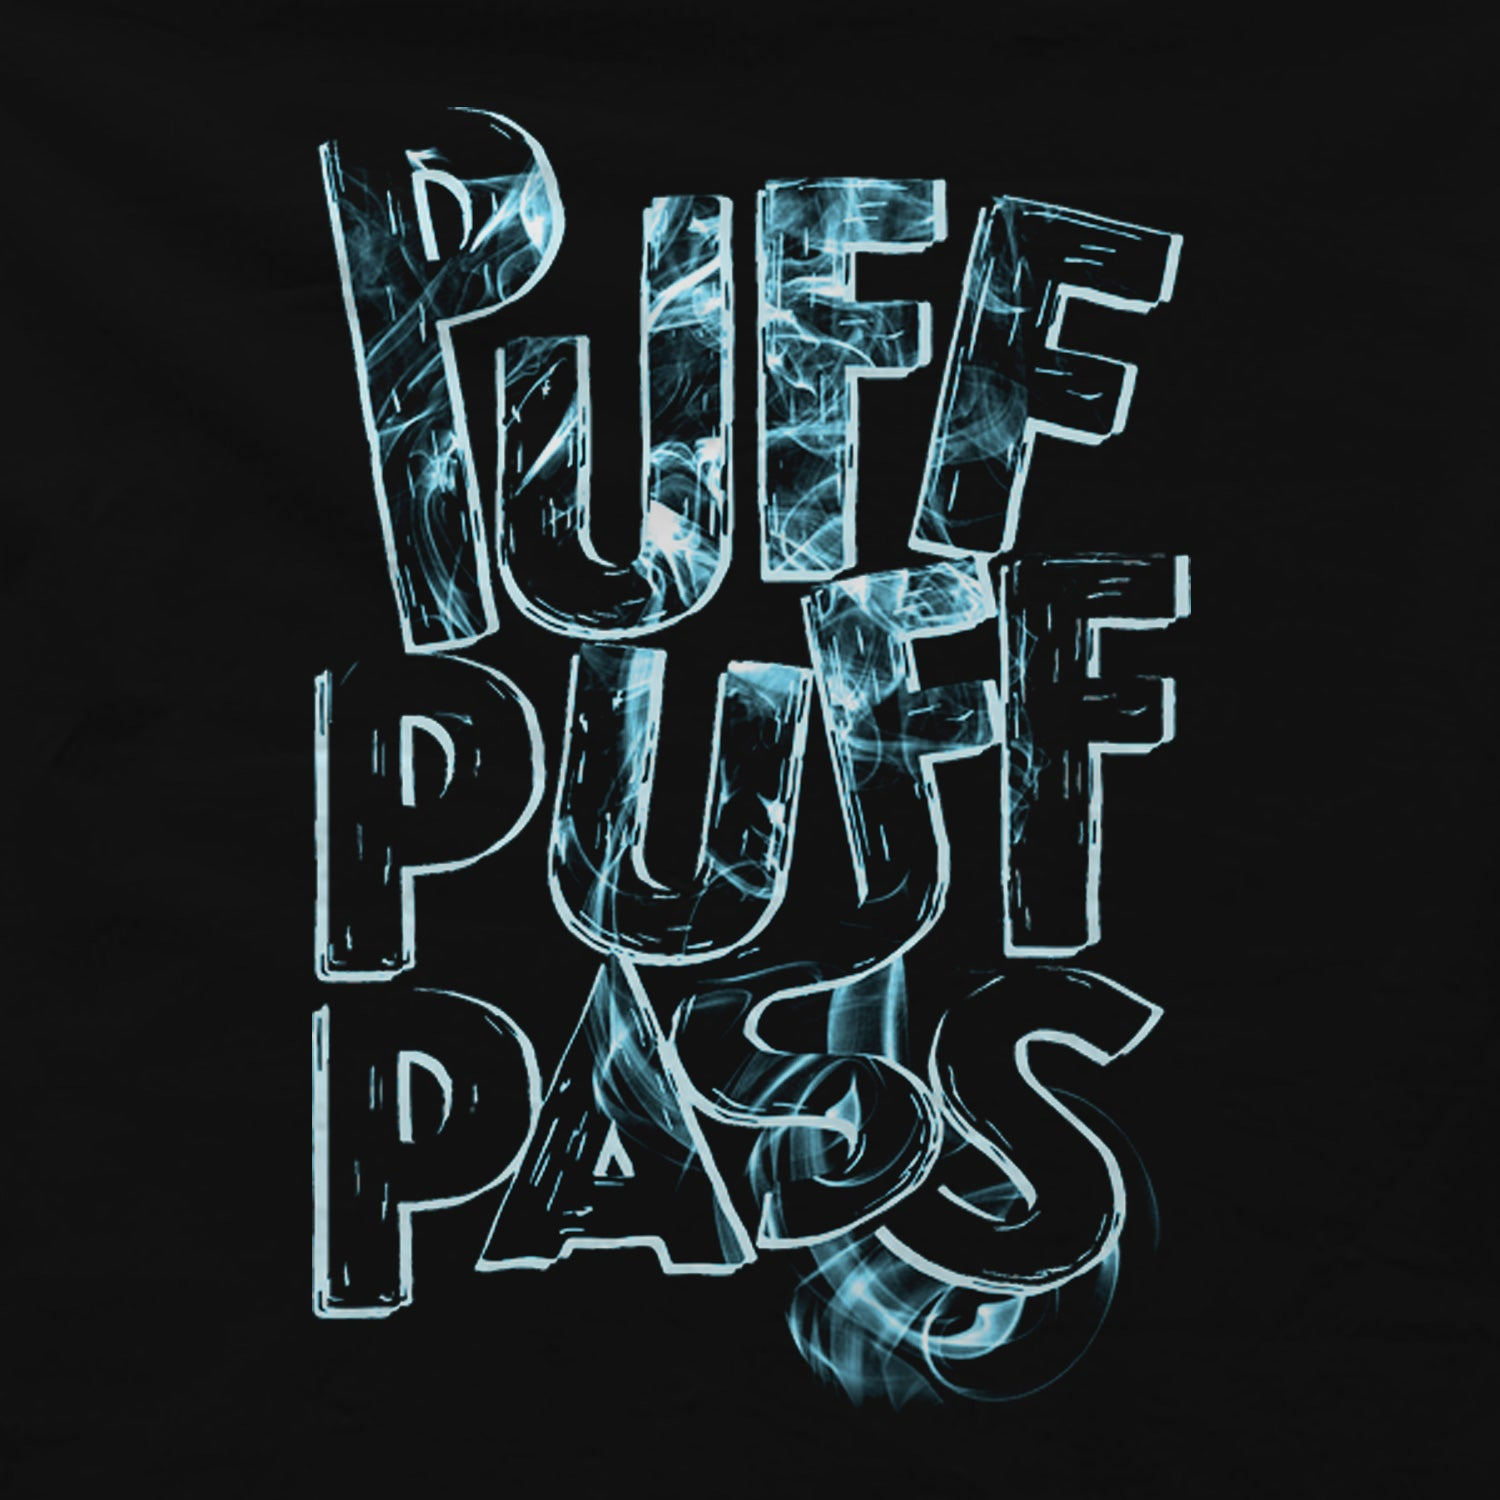 Puff, Puff, Pass T-shirt